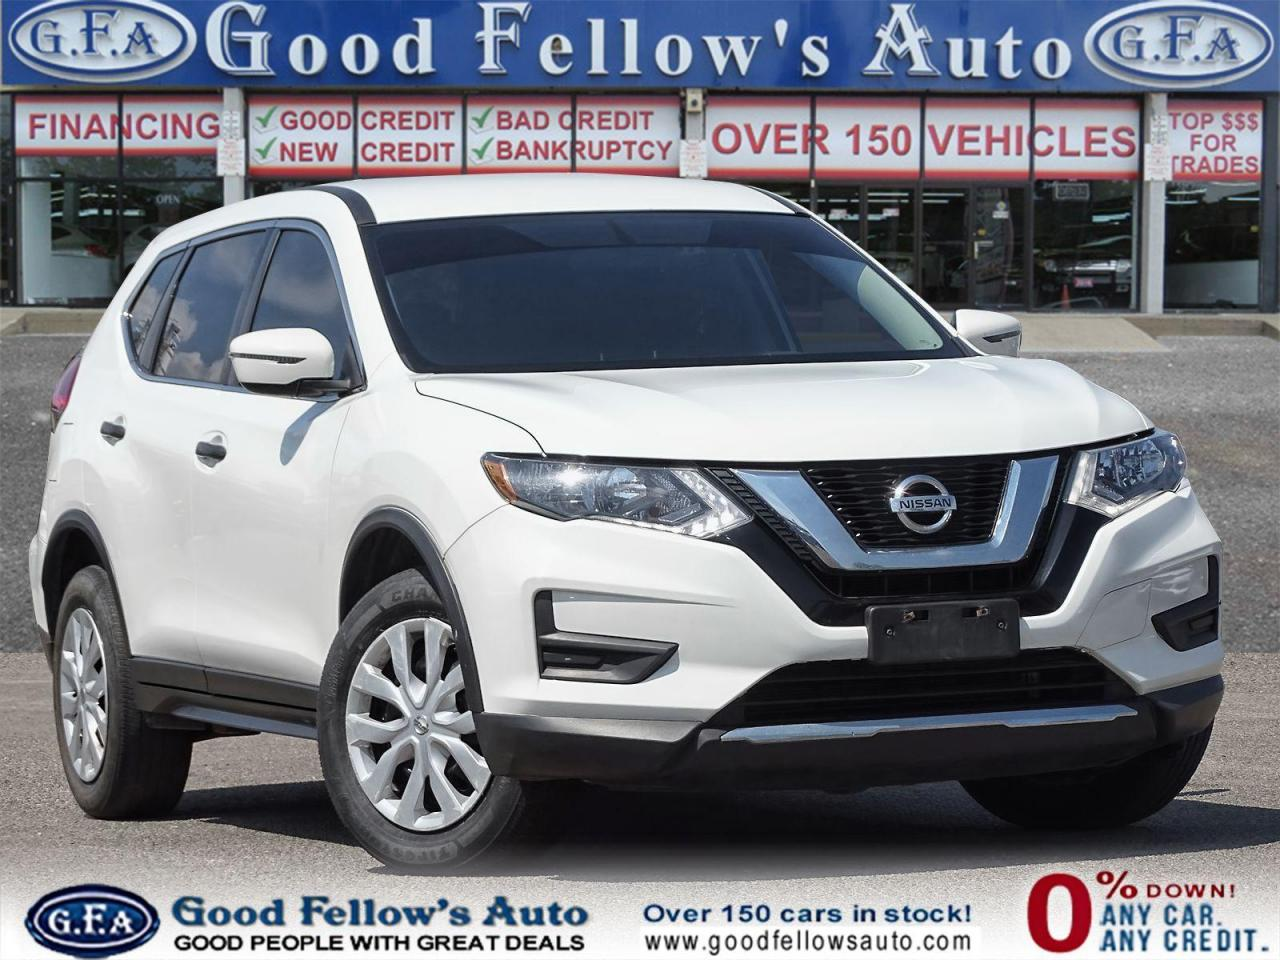 used 2017 Nissan Rogue car, priced at $11,400